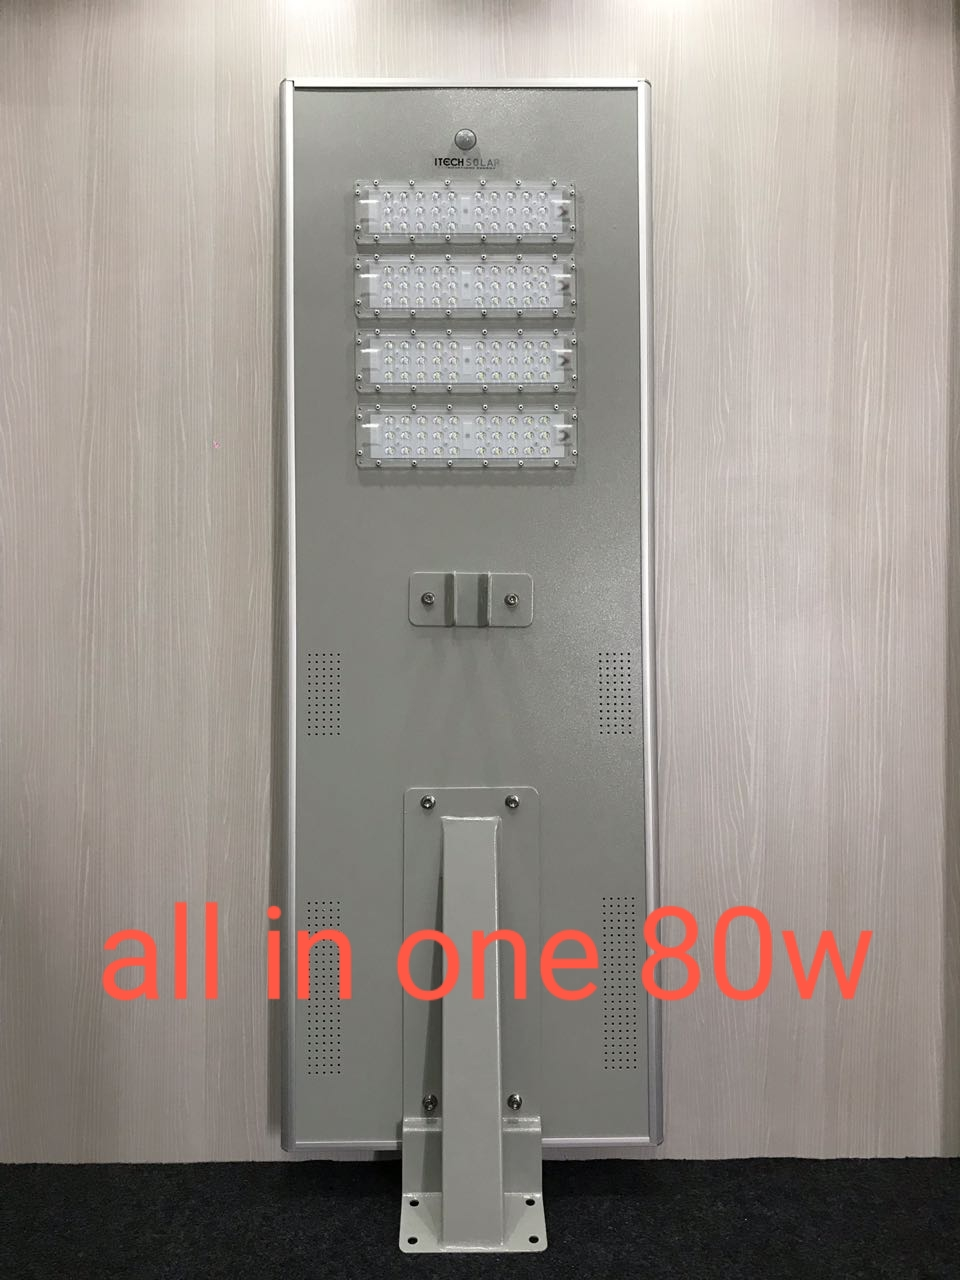 Lampu all in one 80w